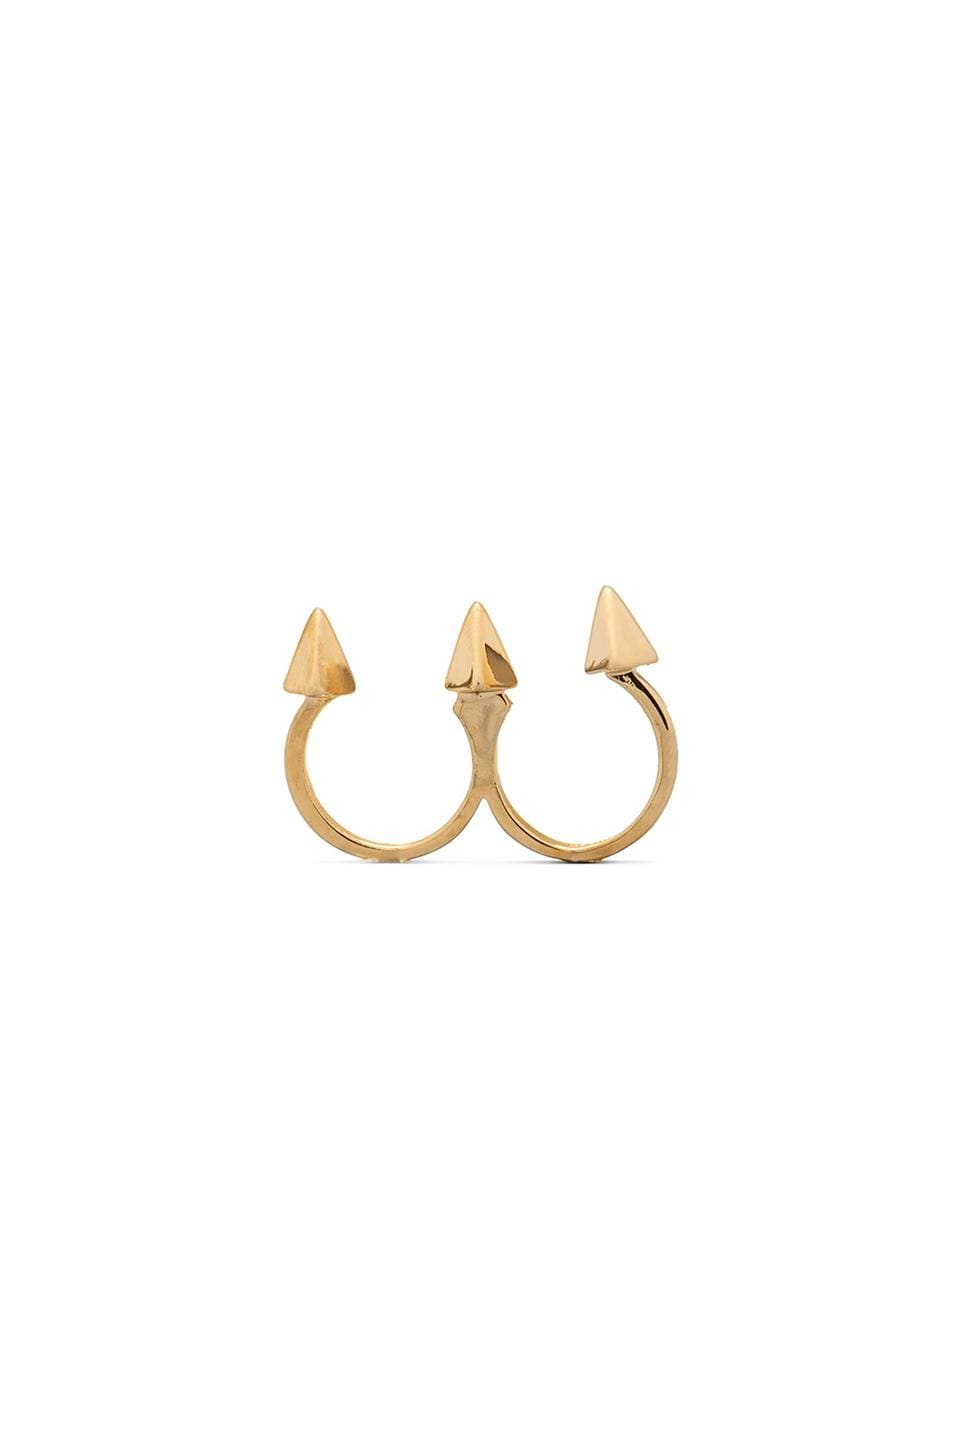 CC Skye Ex-Boyfriend Ring in Gold